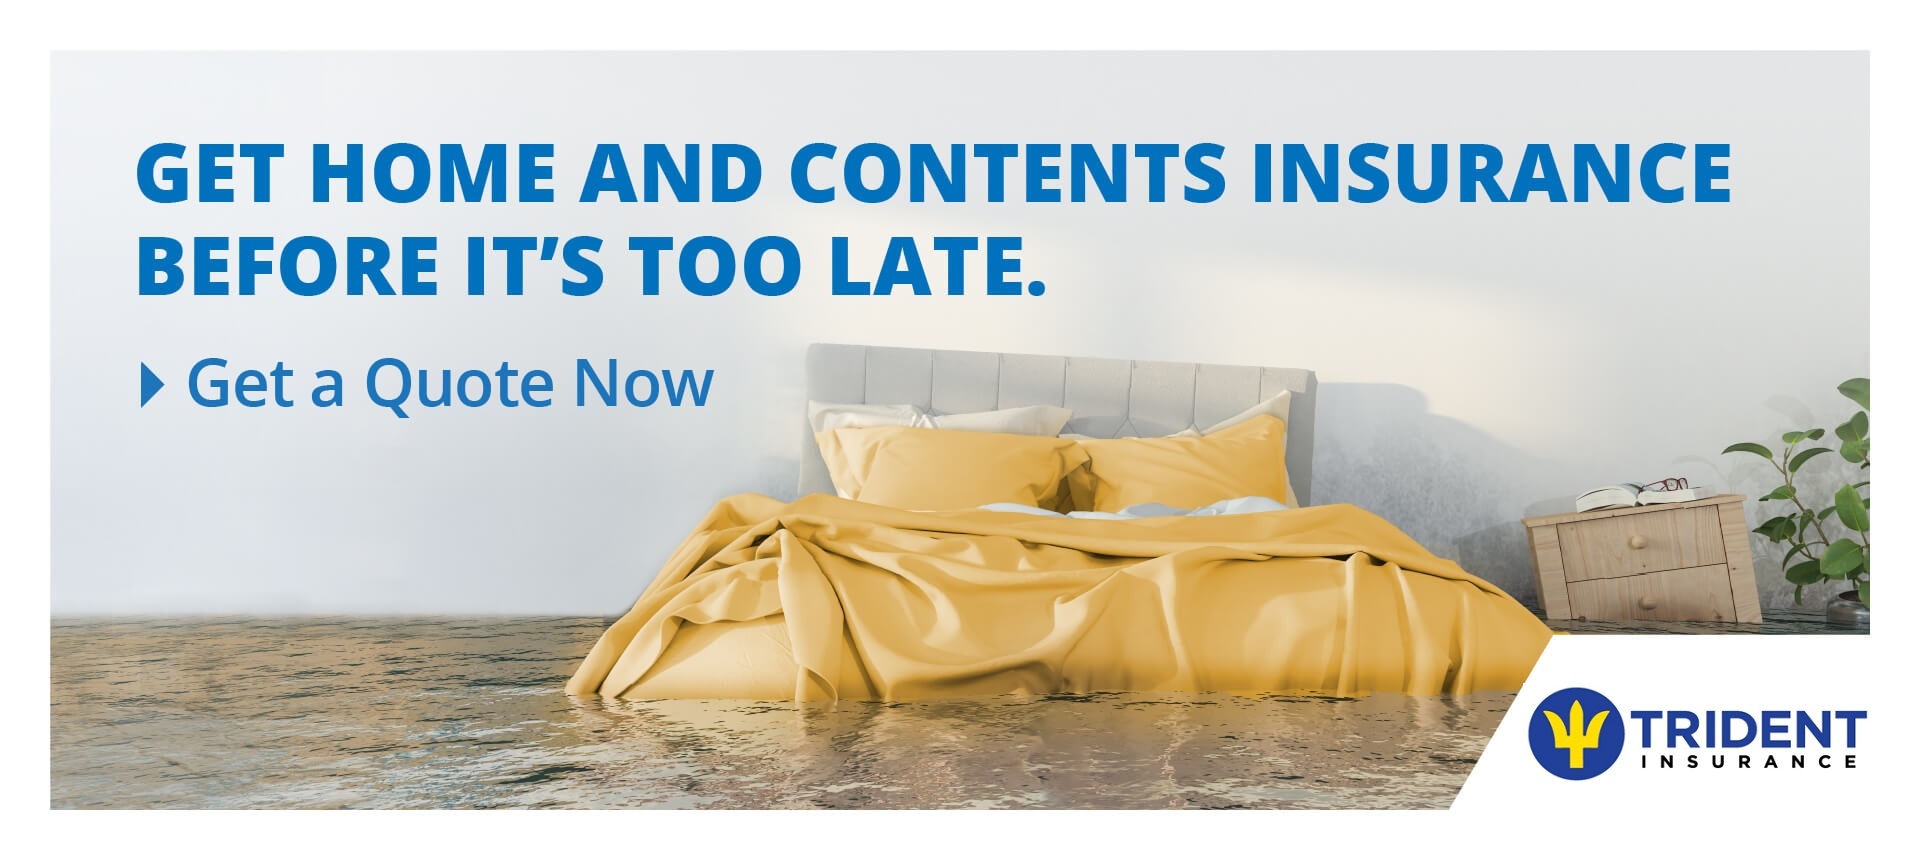 Trident Insurance In Barbados Home Insurance Motor Insurance And Marine Insurance In Barbados